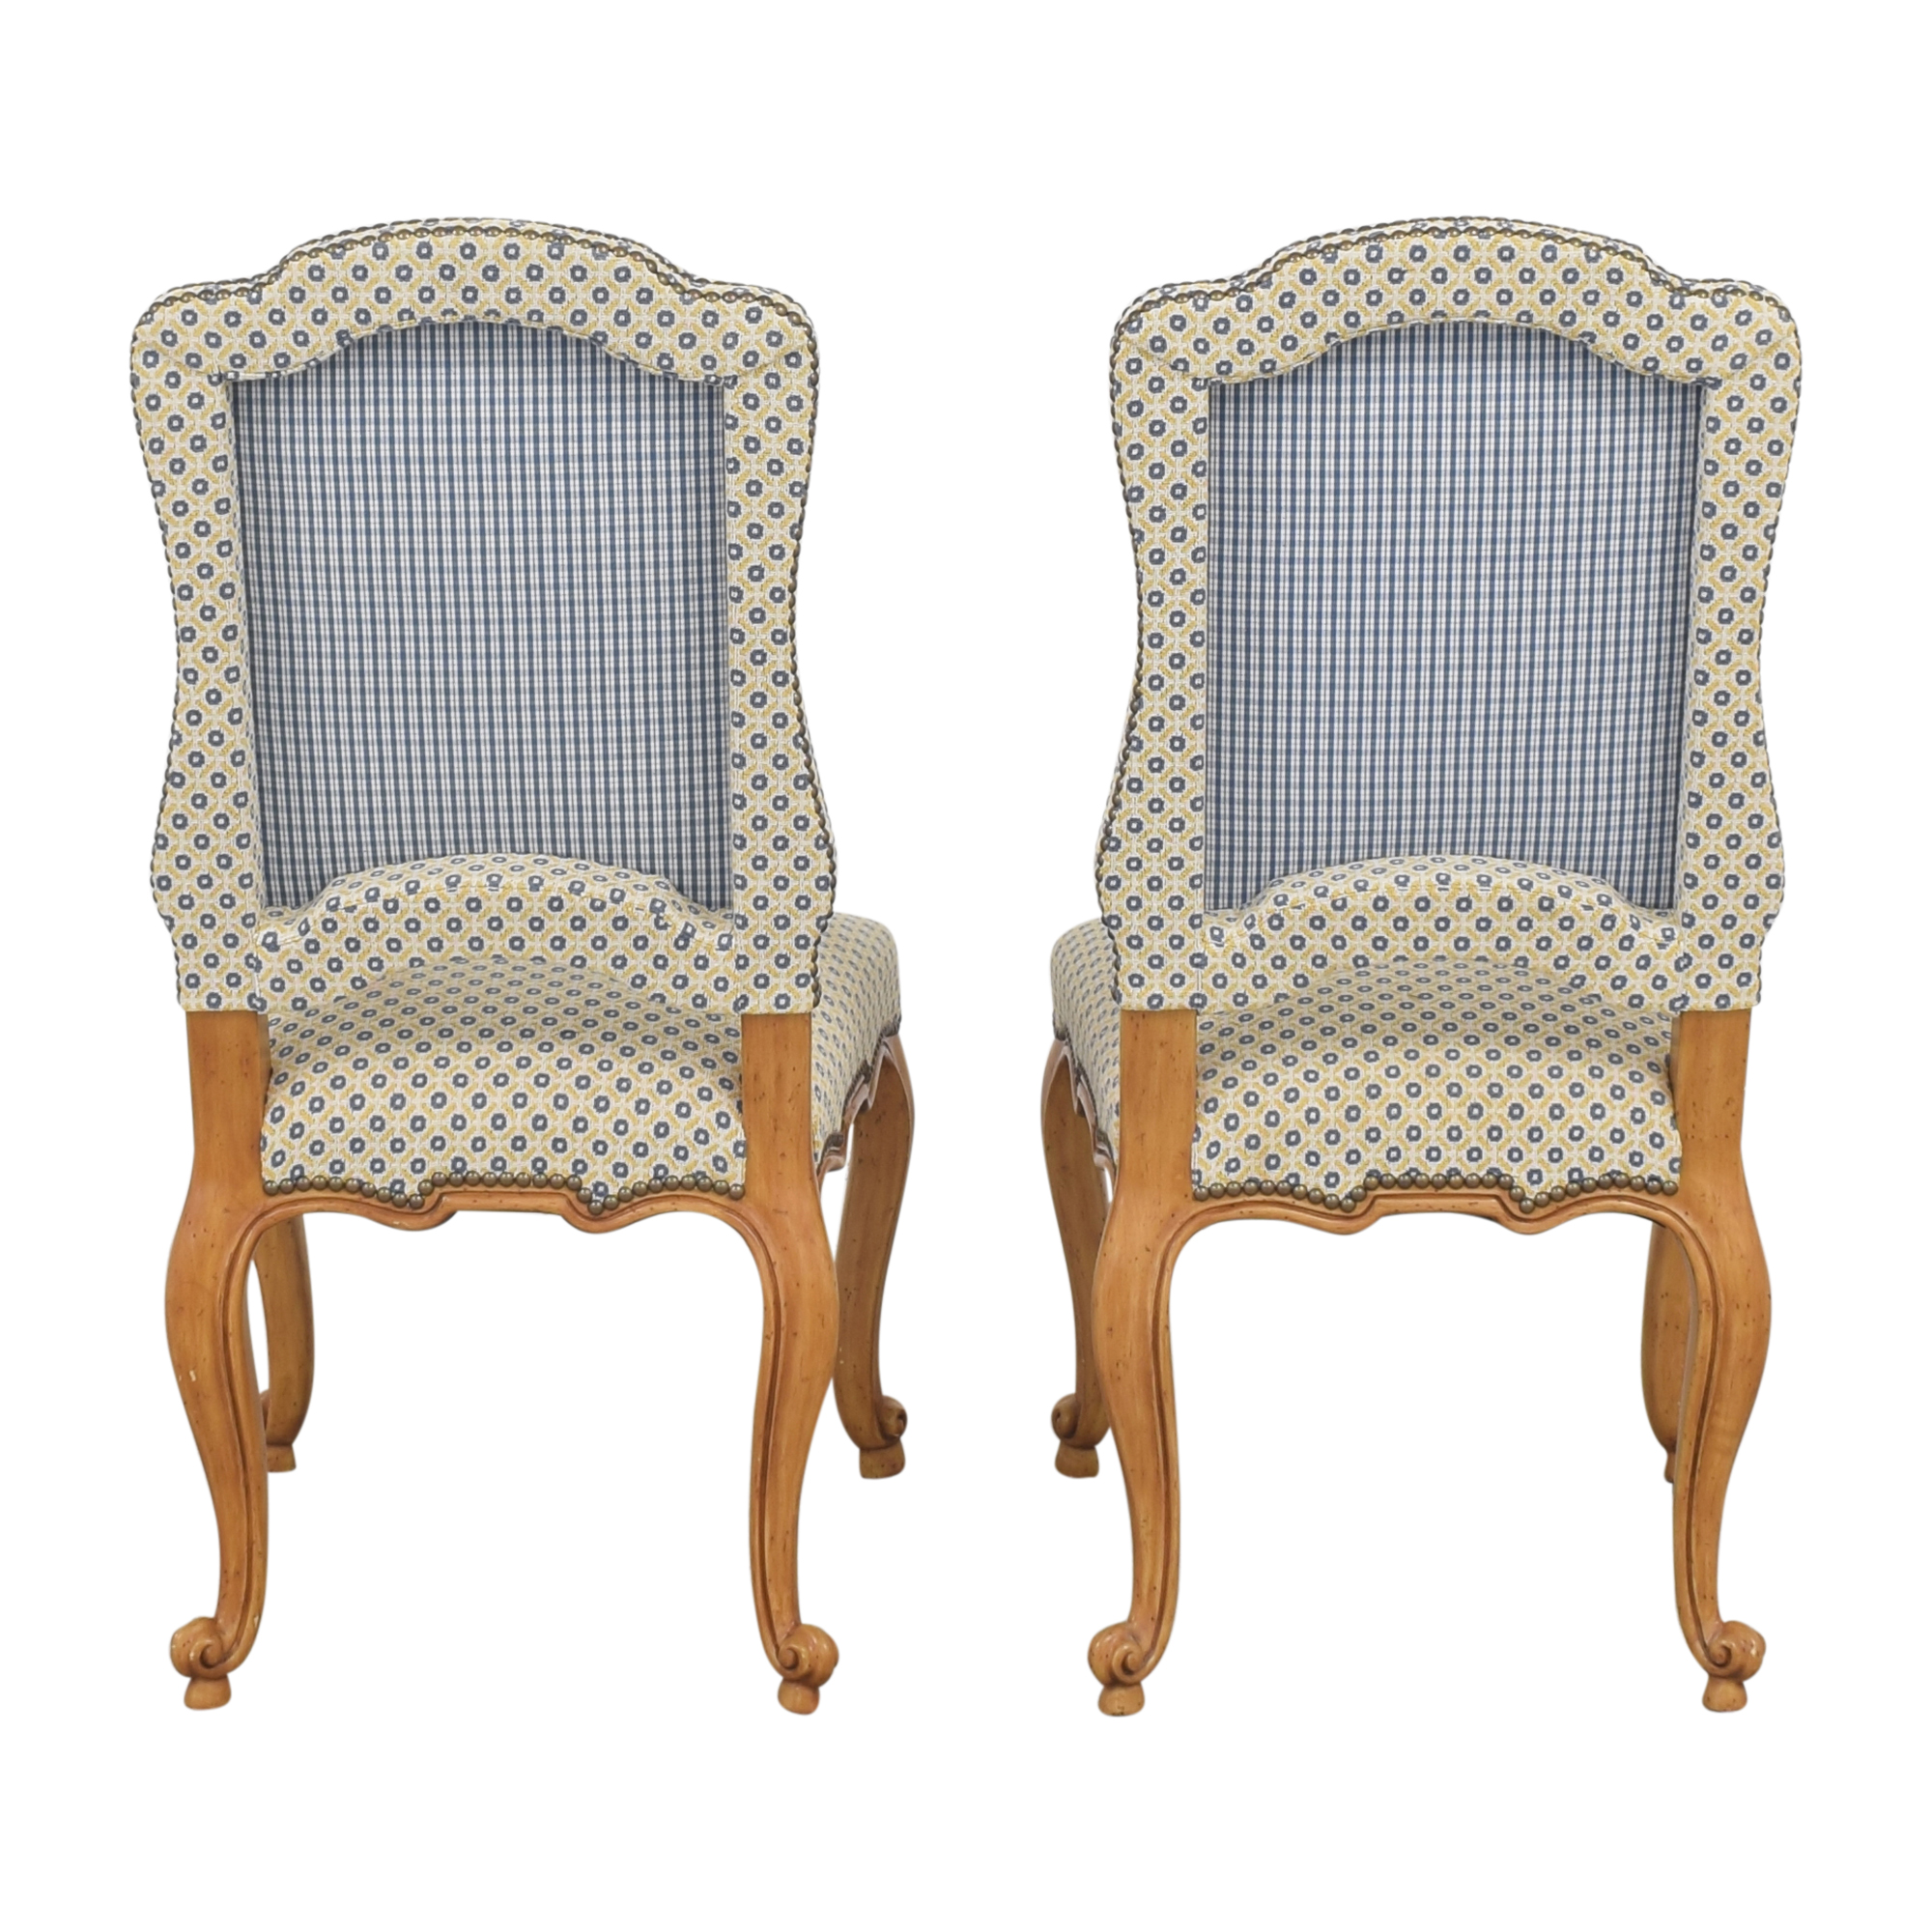 Minton-Spidell Minton-Spidell Regence Dining Side Chairs pa